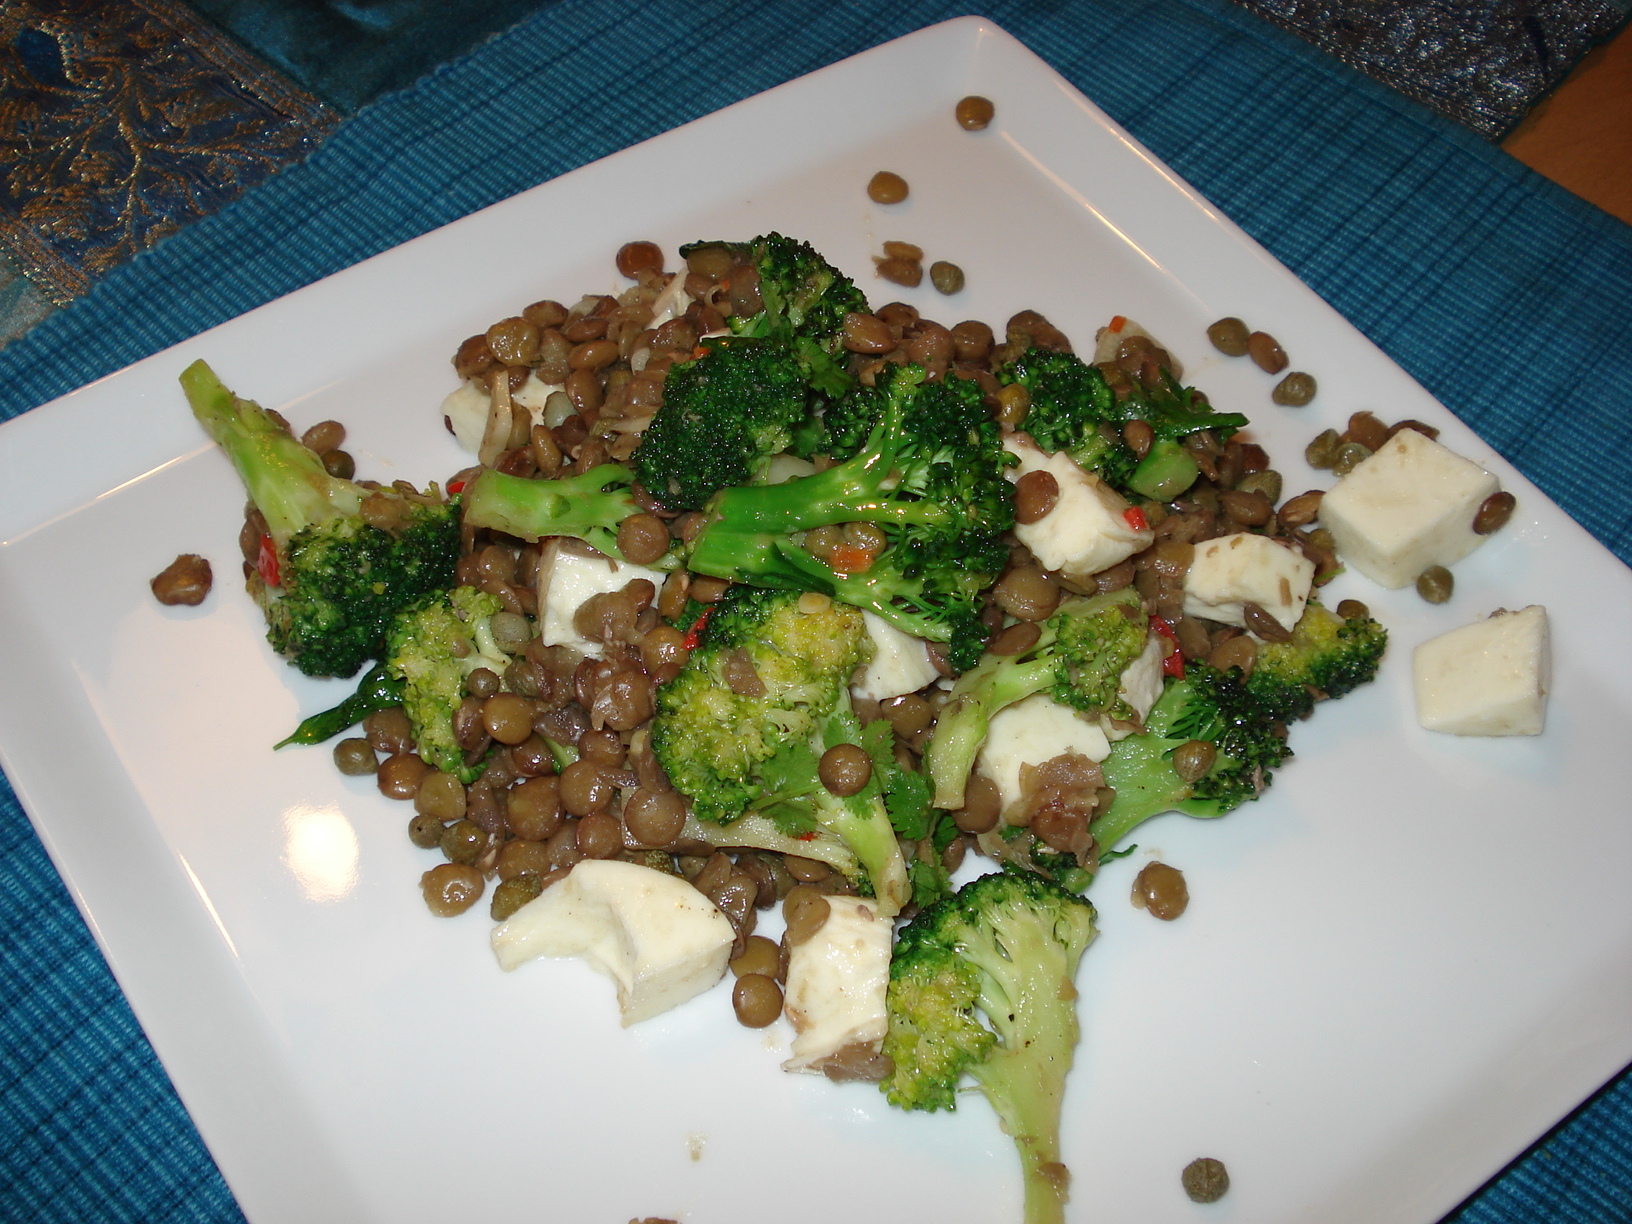 Chili and garlic-flavored bean salad with broccoli and mozzarella